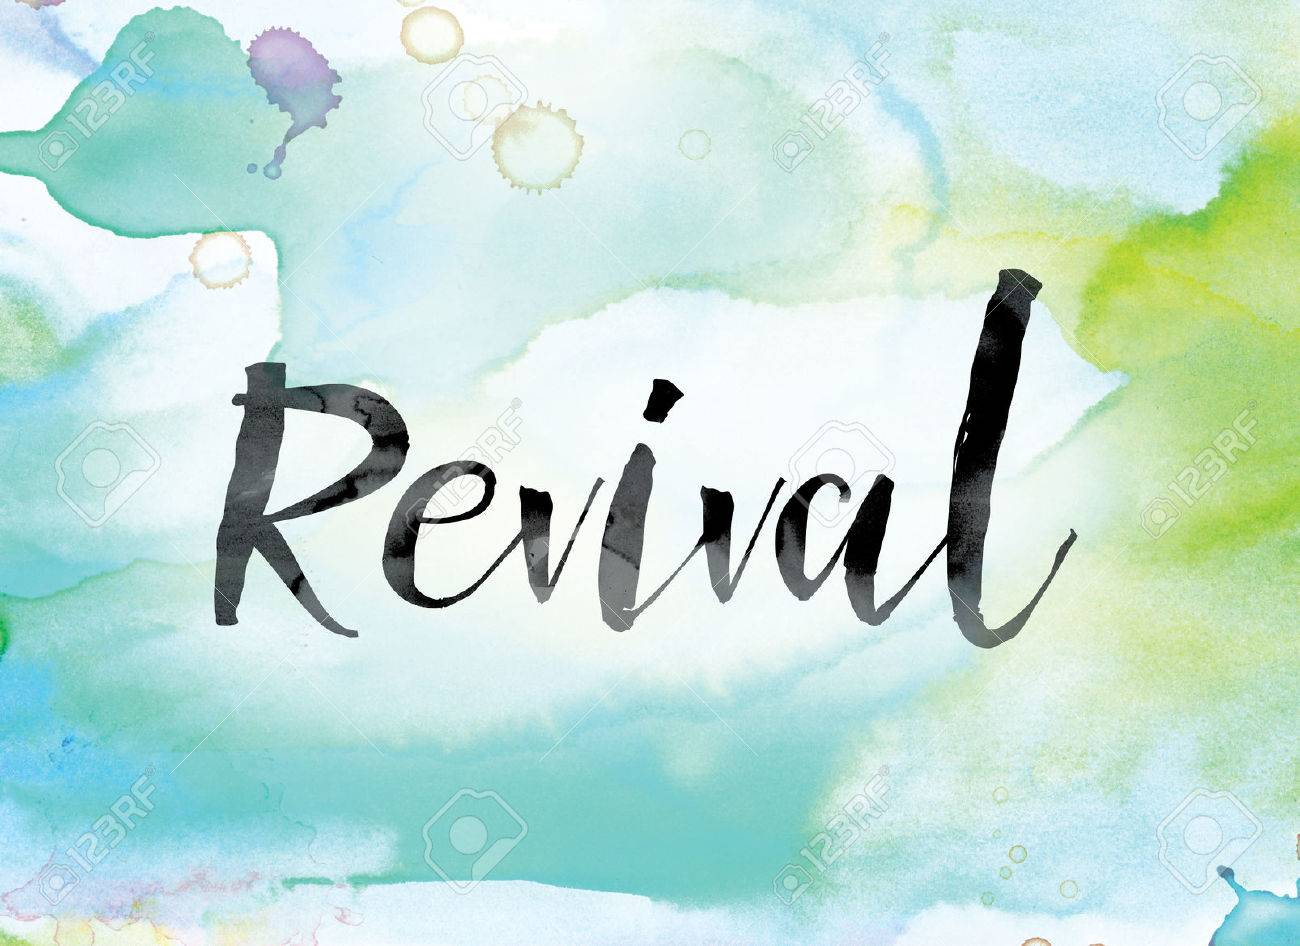 """The word """"Revival"""" painted in black ink over a colorful watercolor washed background concept and theme. - 66553355"""